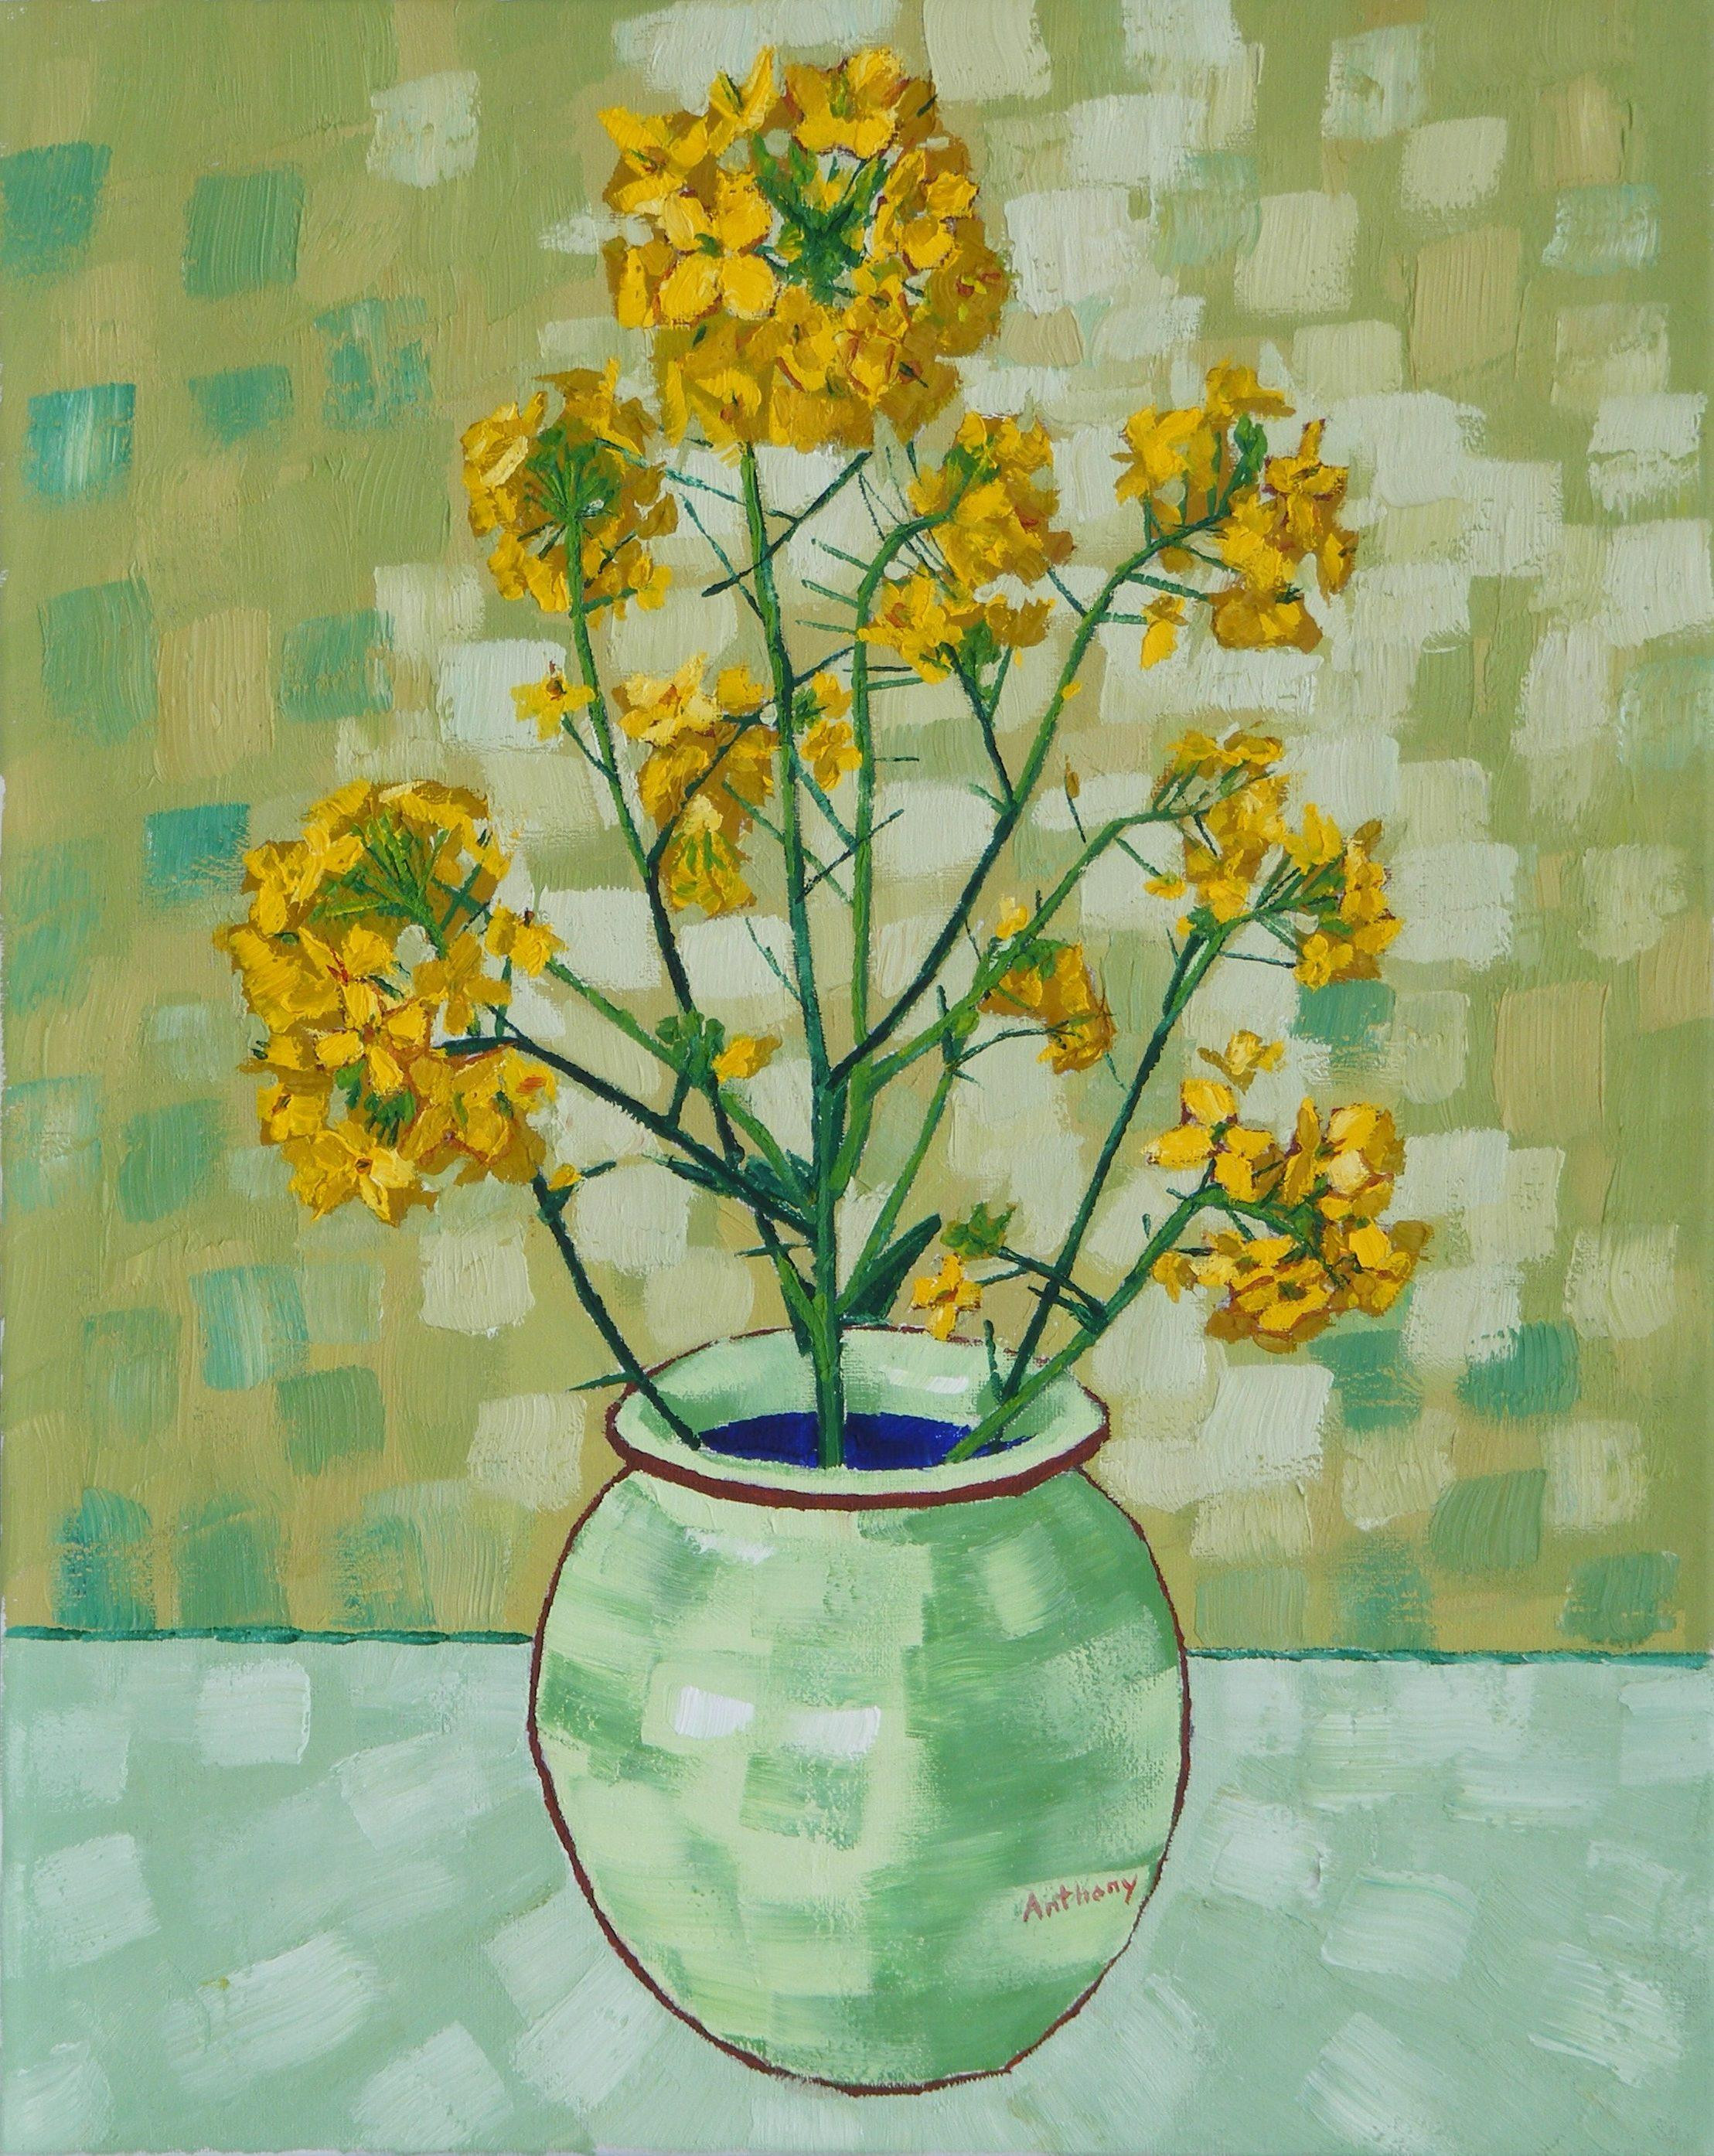 vase with fifteen sunflowers of samuel rothbort large modernist floral bouquet impasto oil within samuel rothbort large modernist floral bouquet impasto oil painting of flowers in a vase painting for sale at 1stdibs